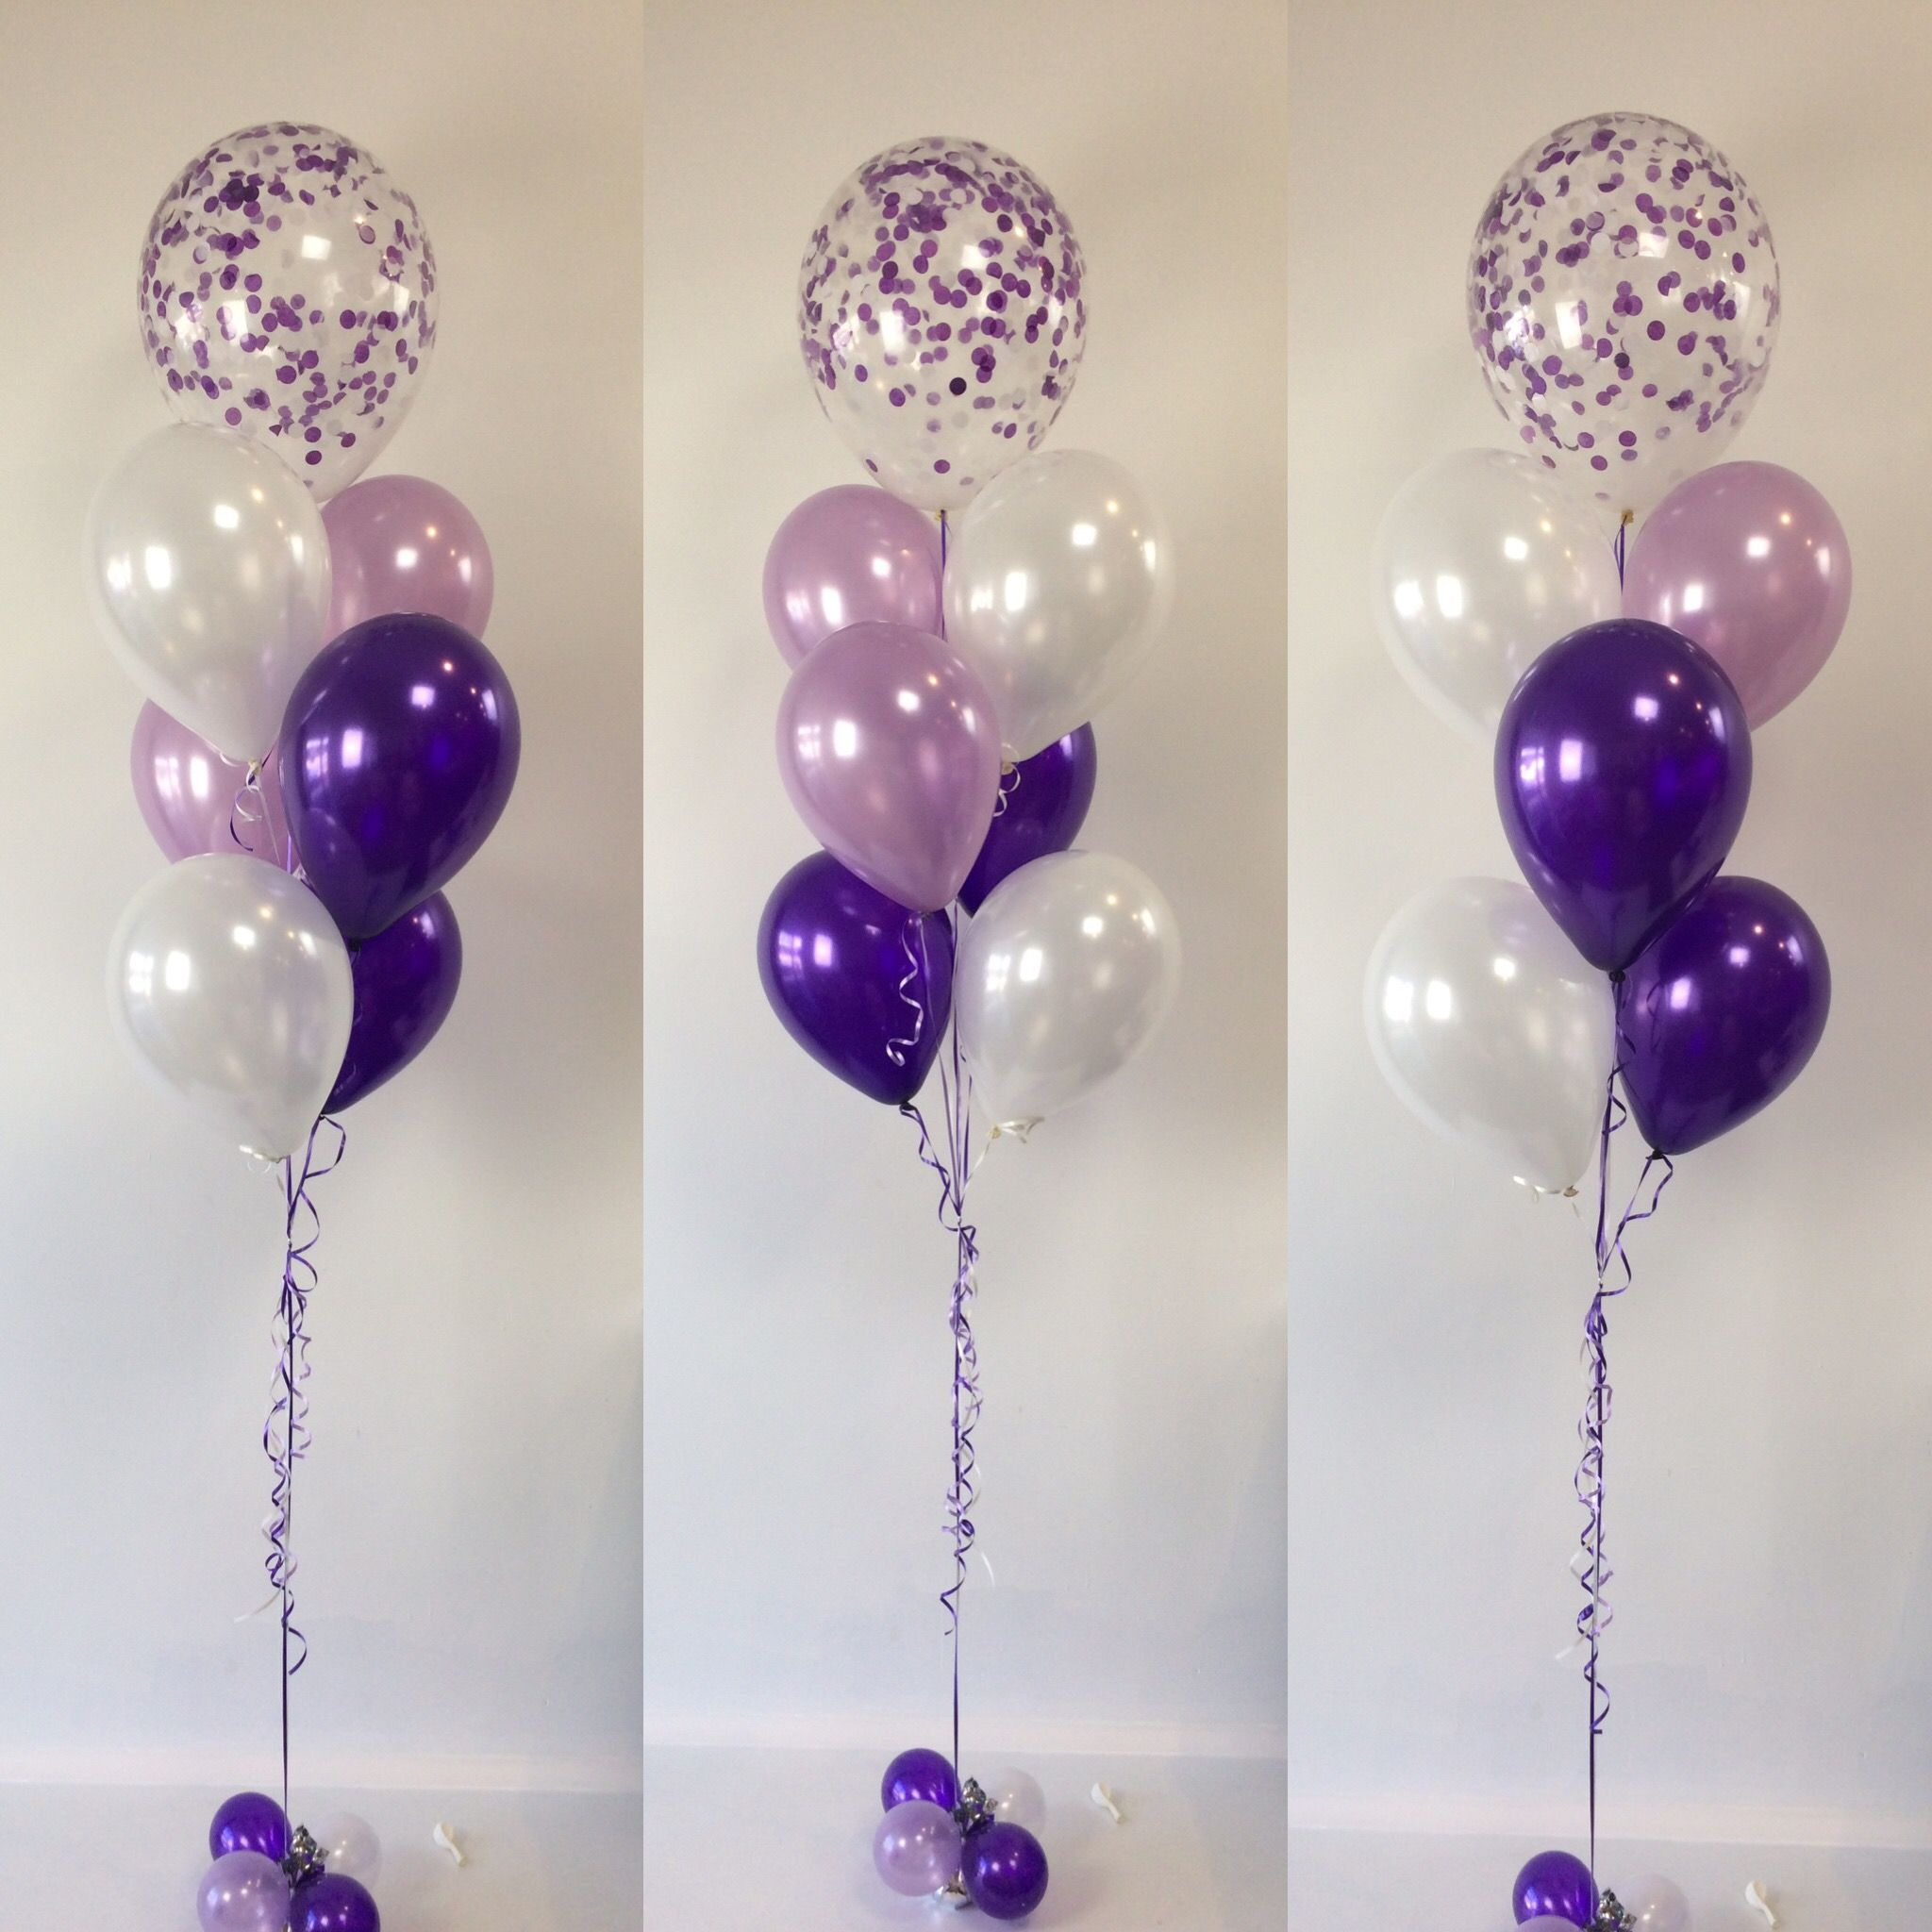 Purples feature - pearl white, lavender and quartz purple topped ...